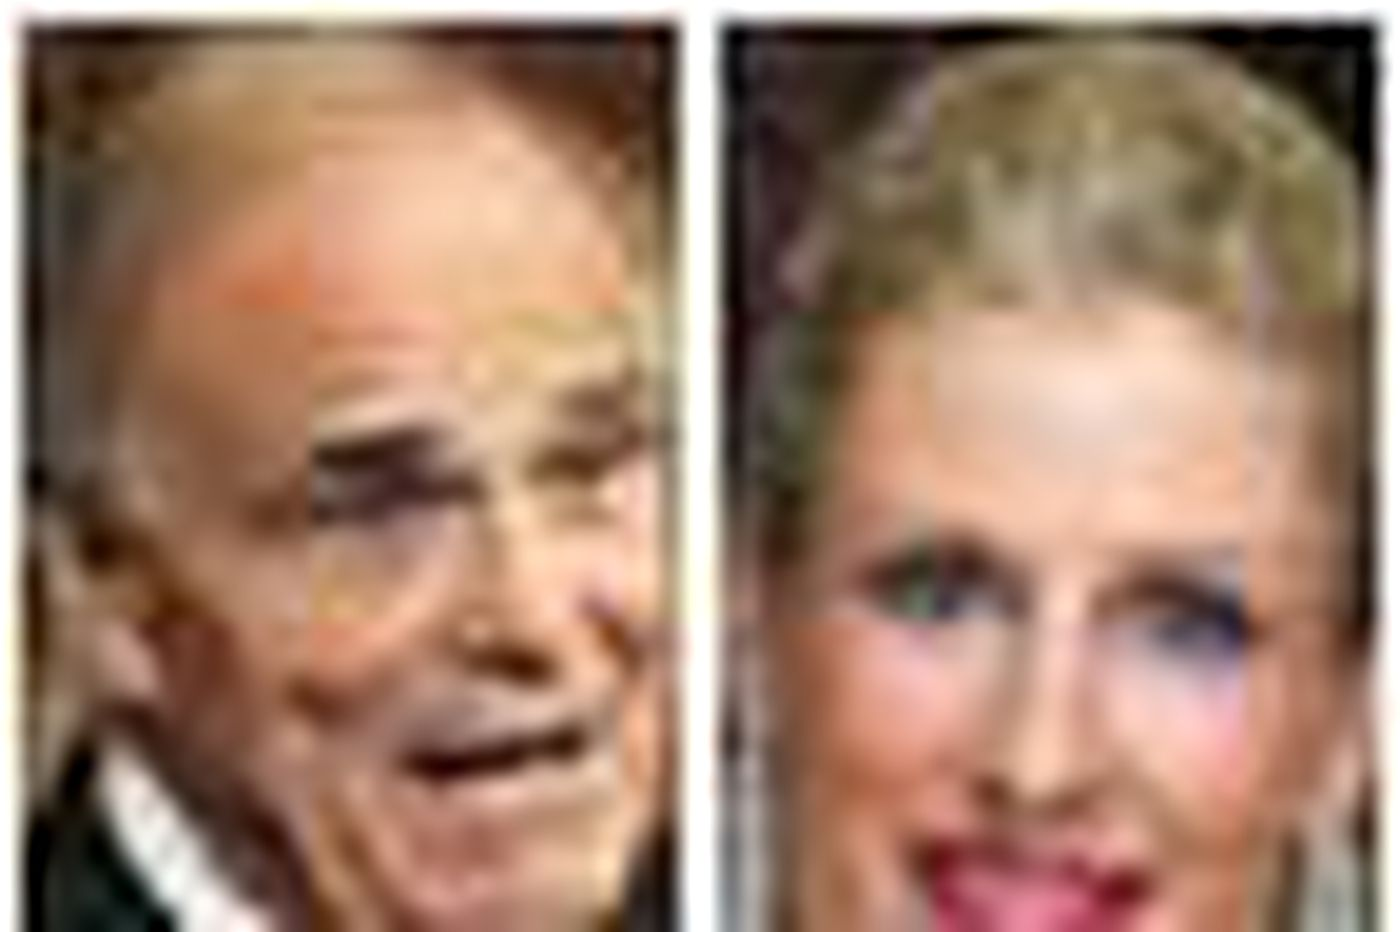 Rendell, state media aide deny affair rumors